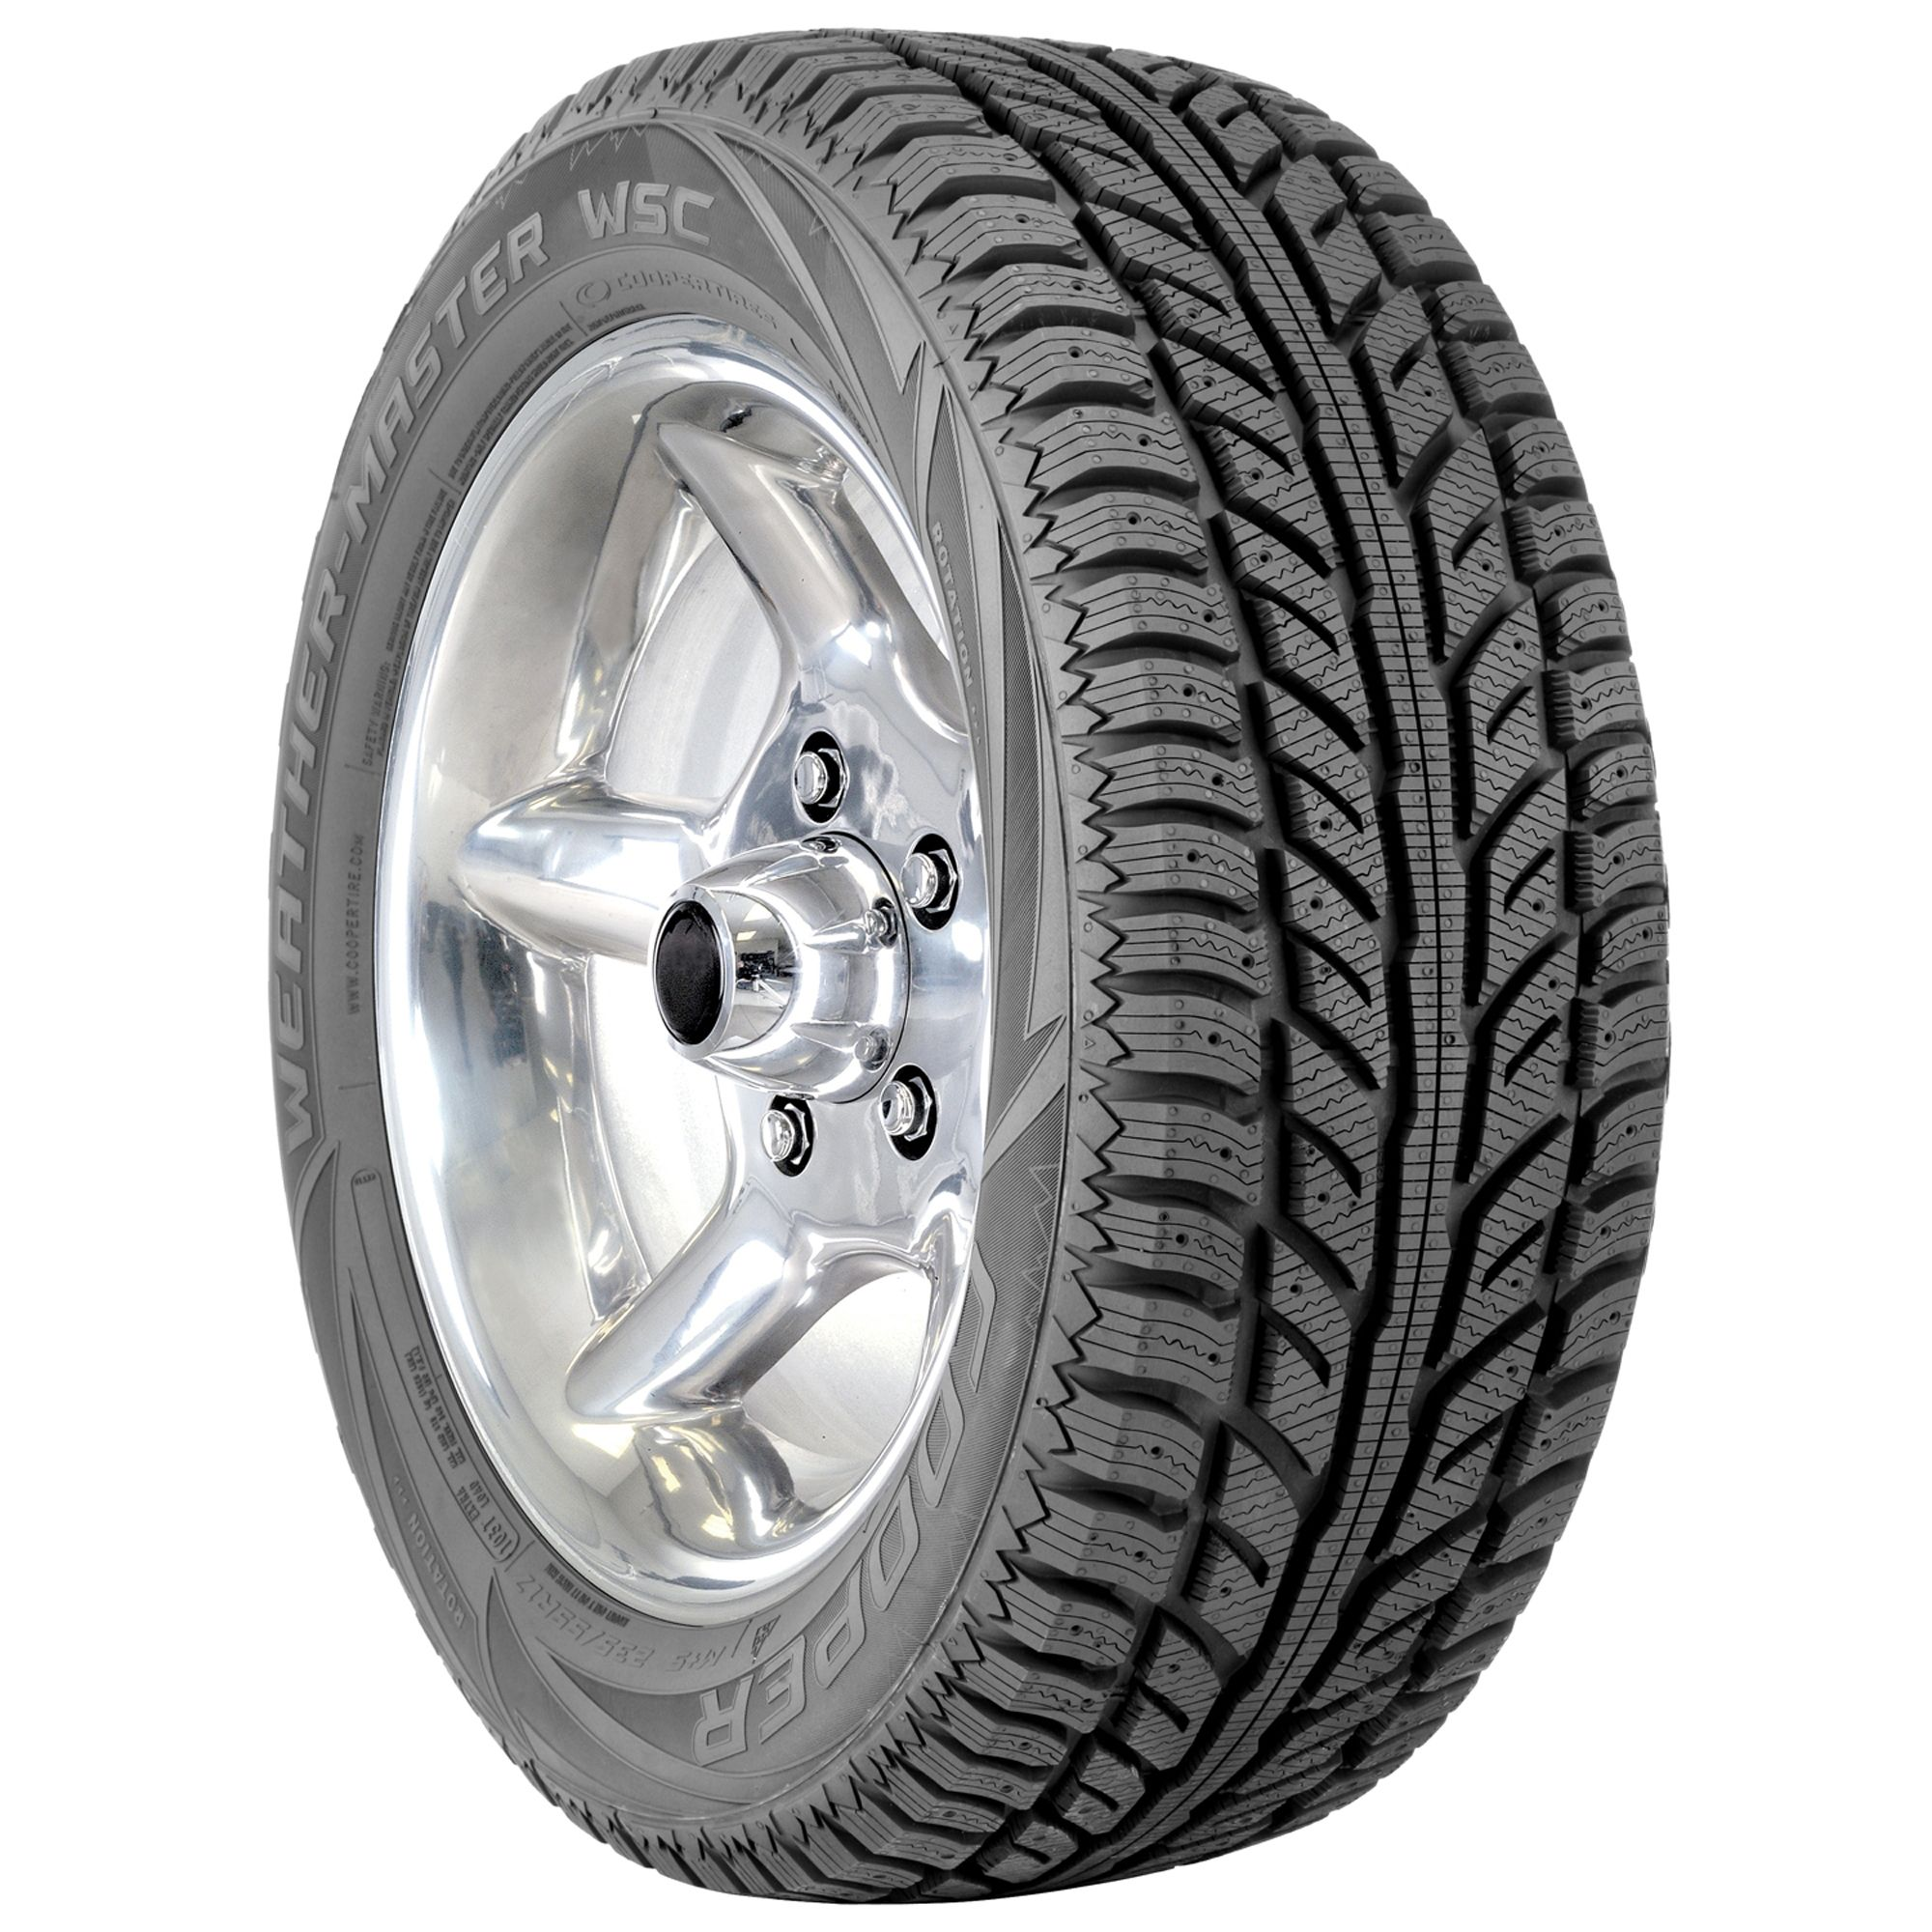 WeatherMaster WSC - 265/65R17 112T BW - Winter Tire